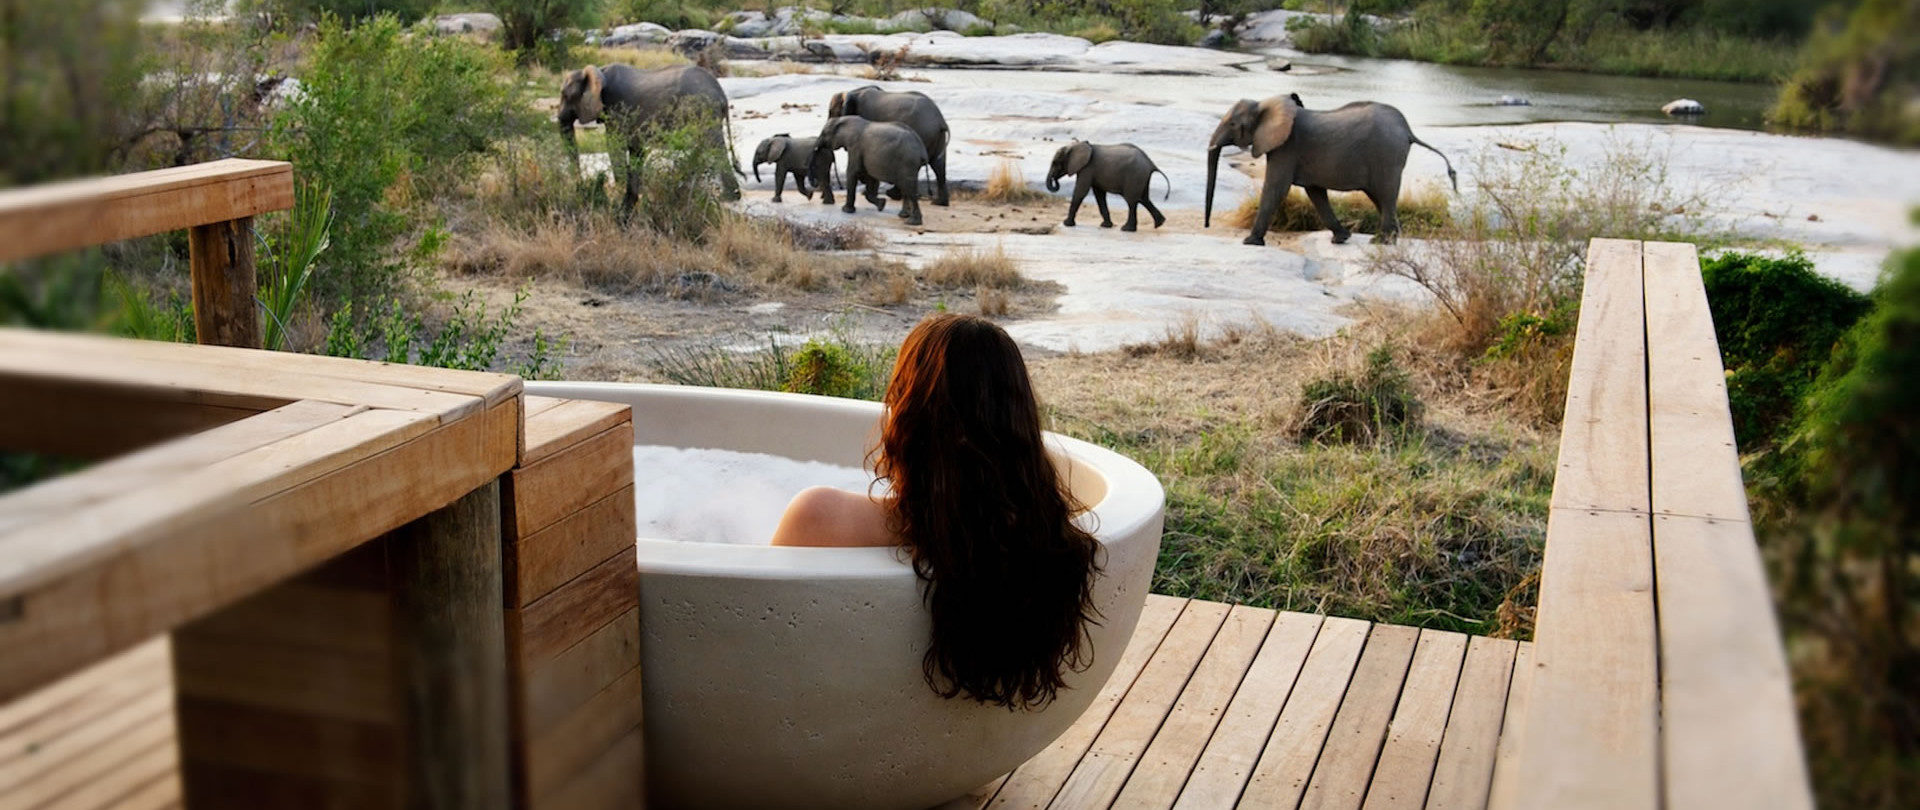 Our Africa is immense, enormous, dramatic and in full colour